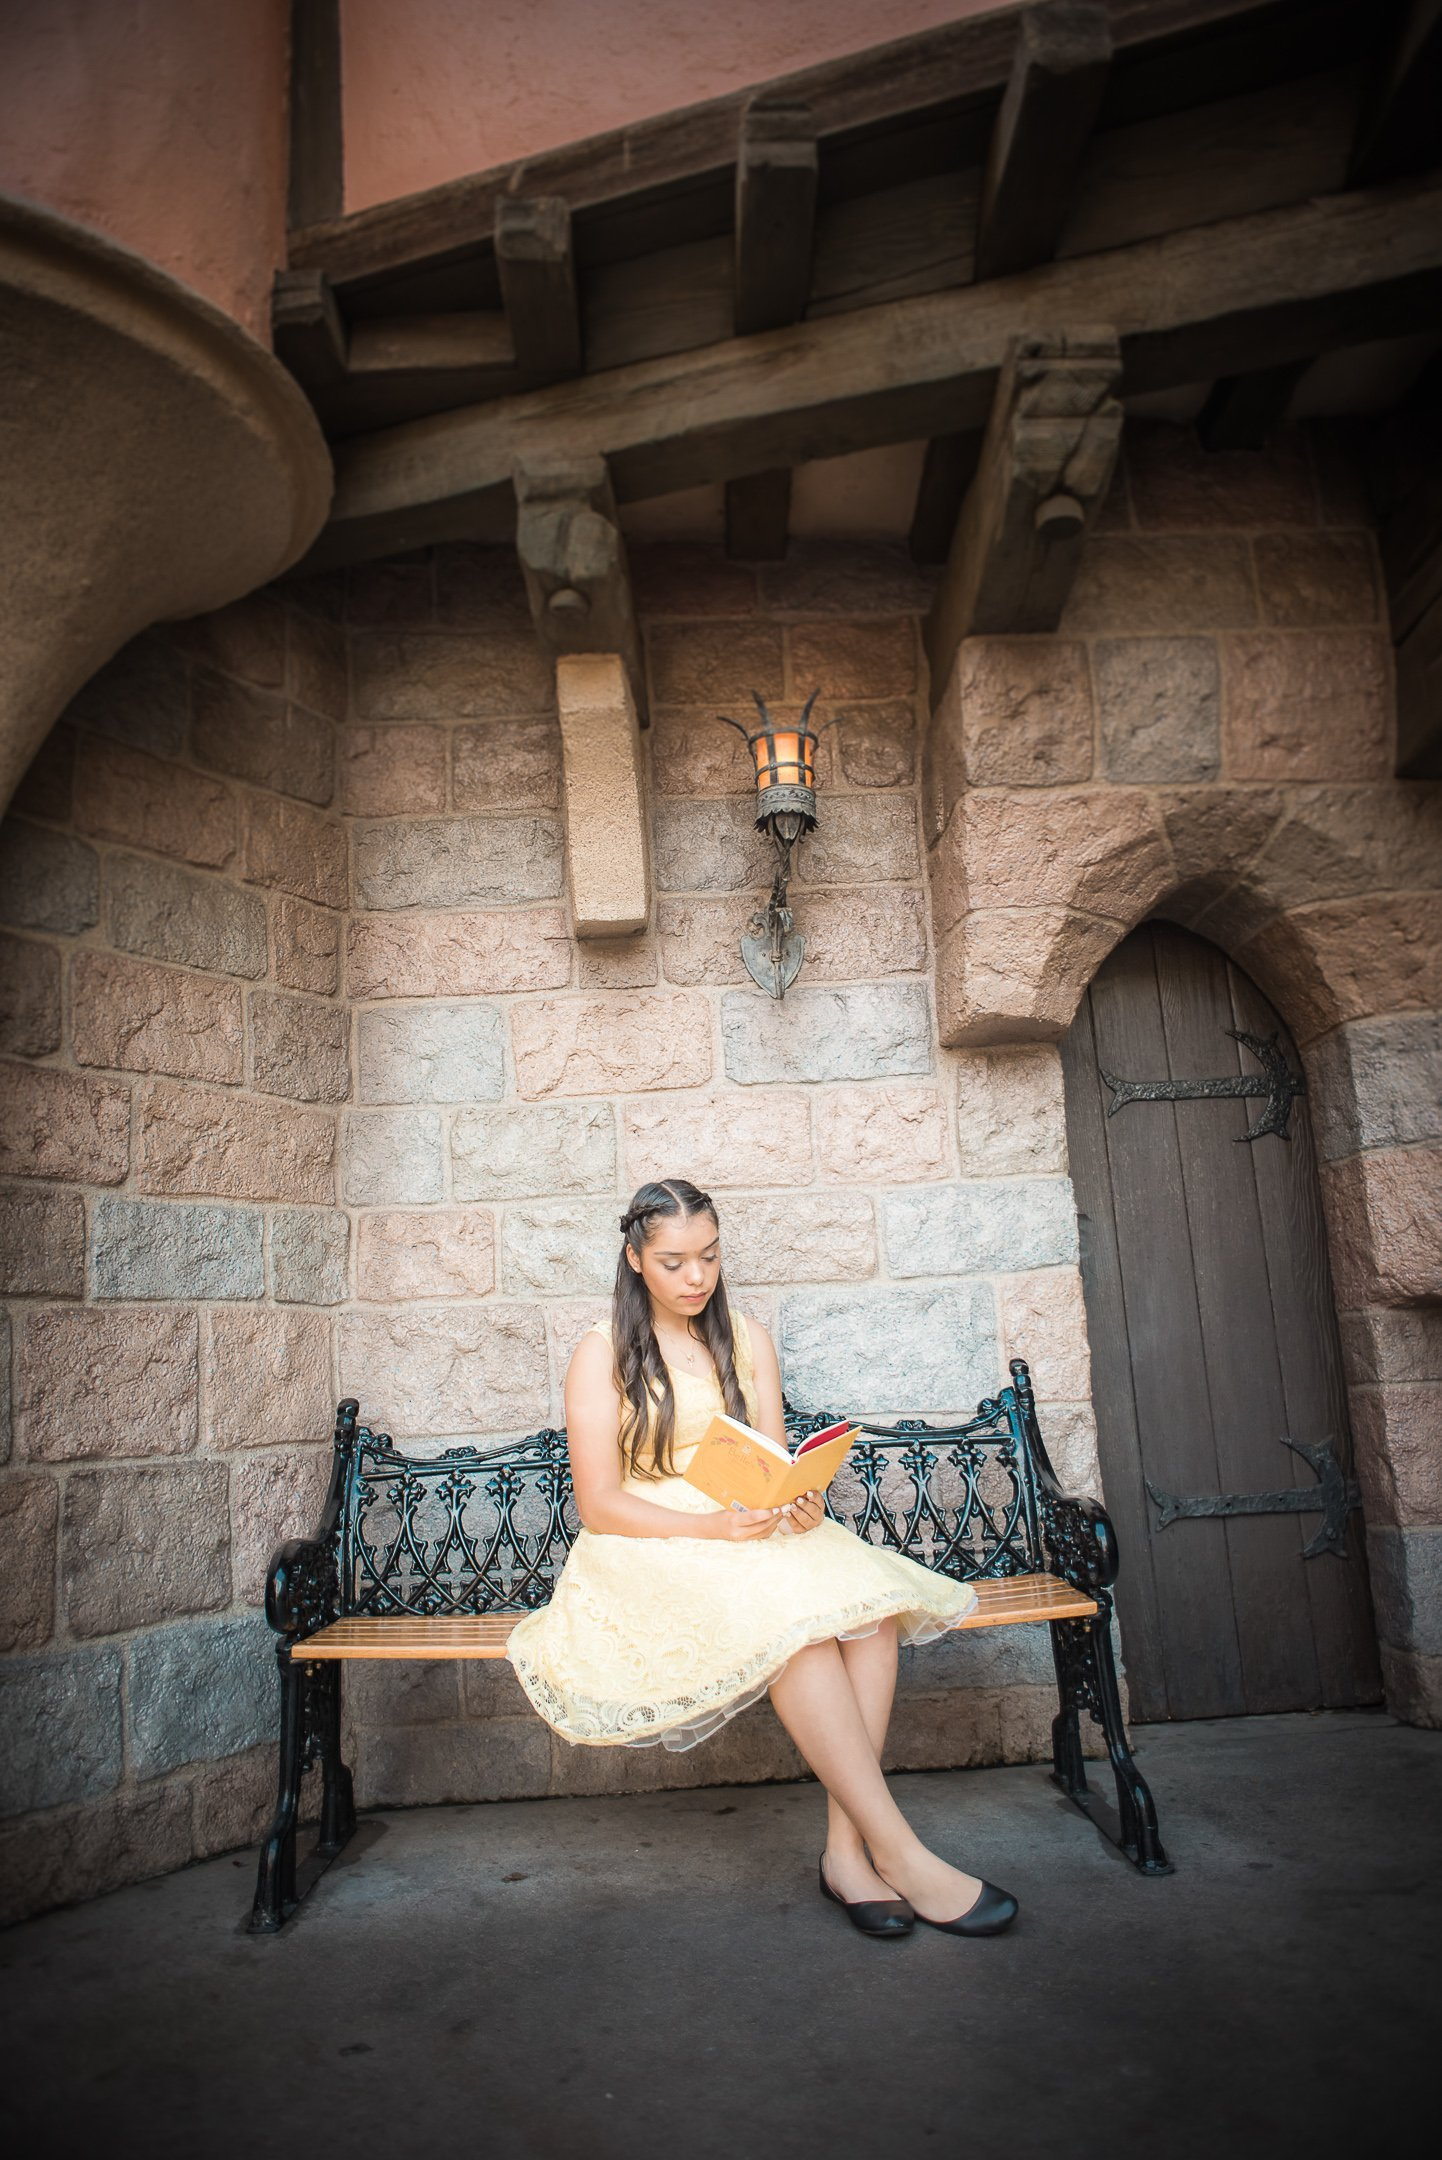 Disneyland Quinceanera photo session - In front of Sleeping Beauty's castle in Disneyland, CA